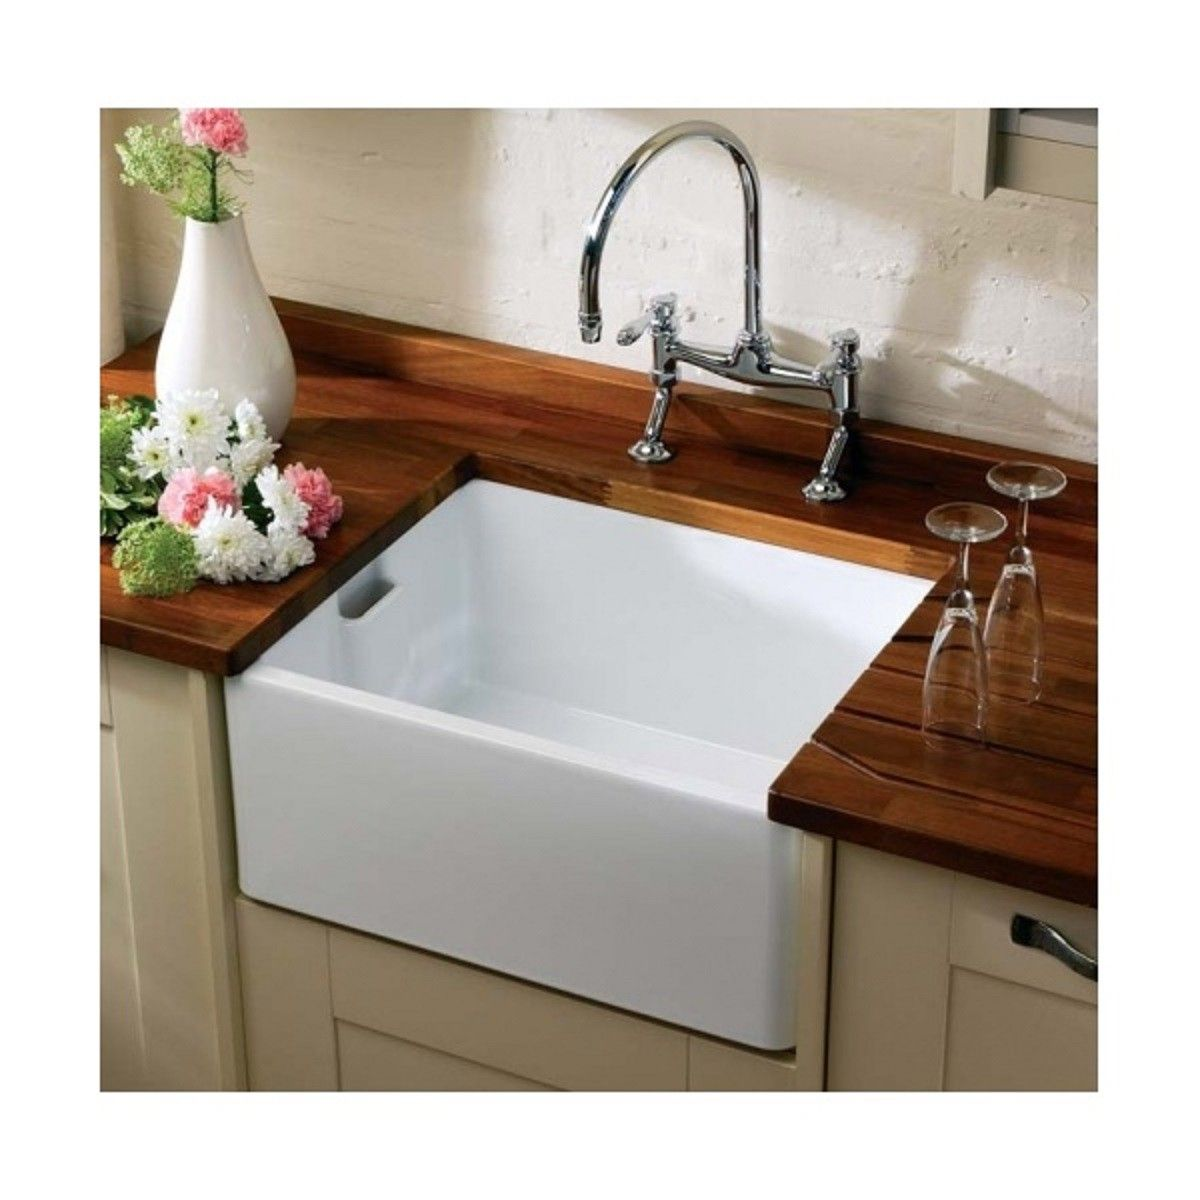 136.97 Shaws Baby Belfast Sink 460mm | Kitchen | Pinterest ...